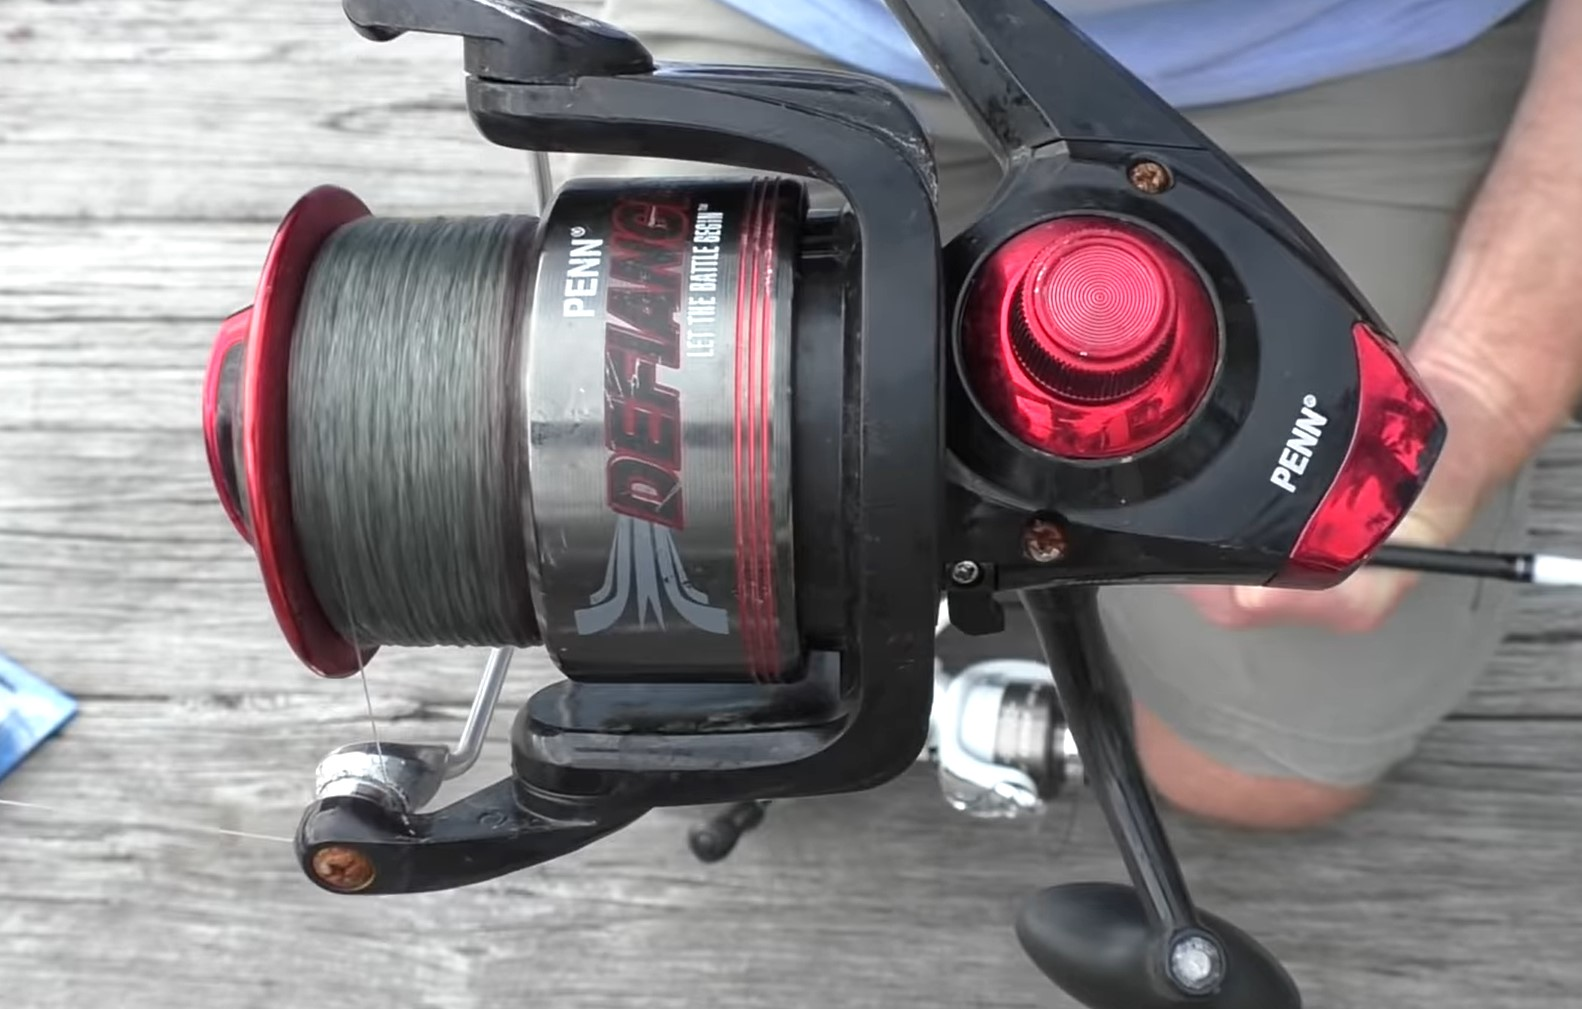 Best spinning Reel under $100 Review In 2020 - Expert's Guide 1